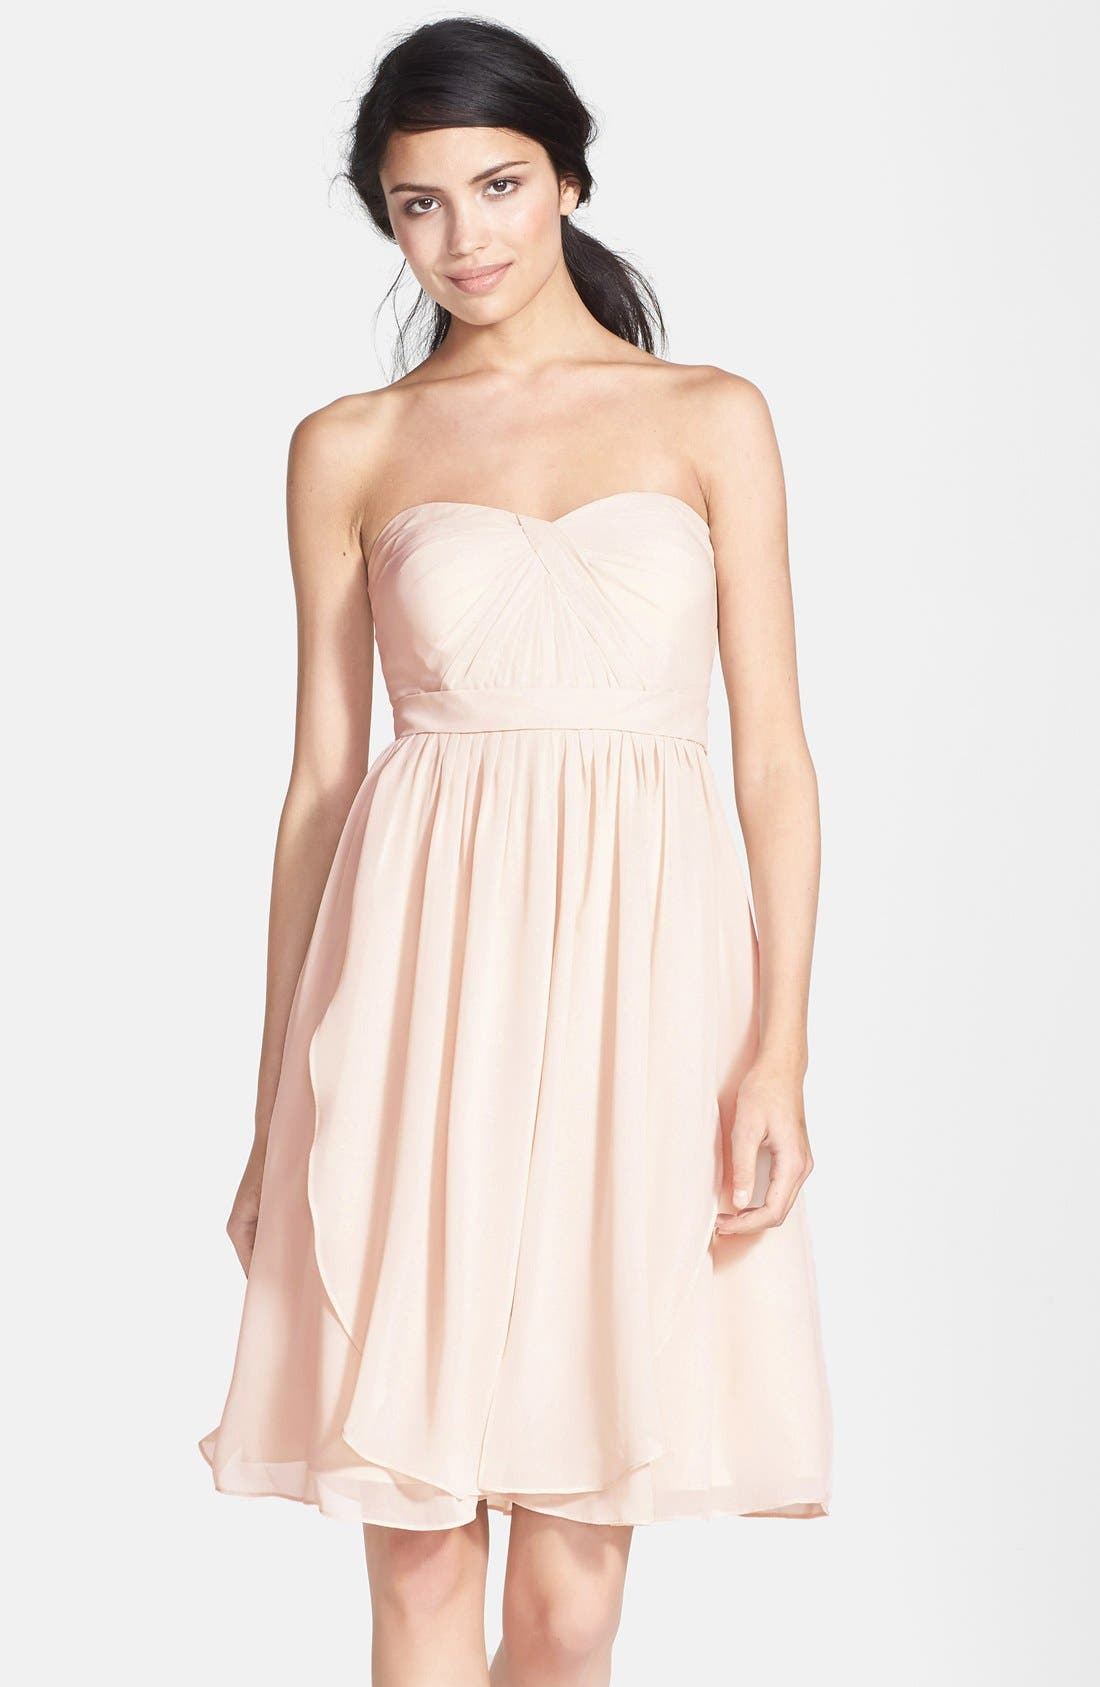 Alternate Image 1 Selected - Jenny Yoo 'Keira' Convertible Strapless Chiffon Dress